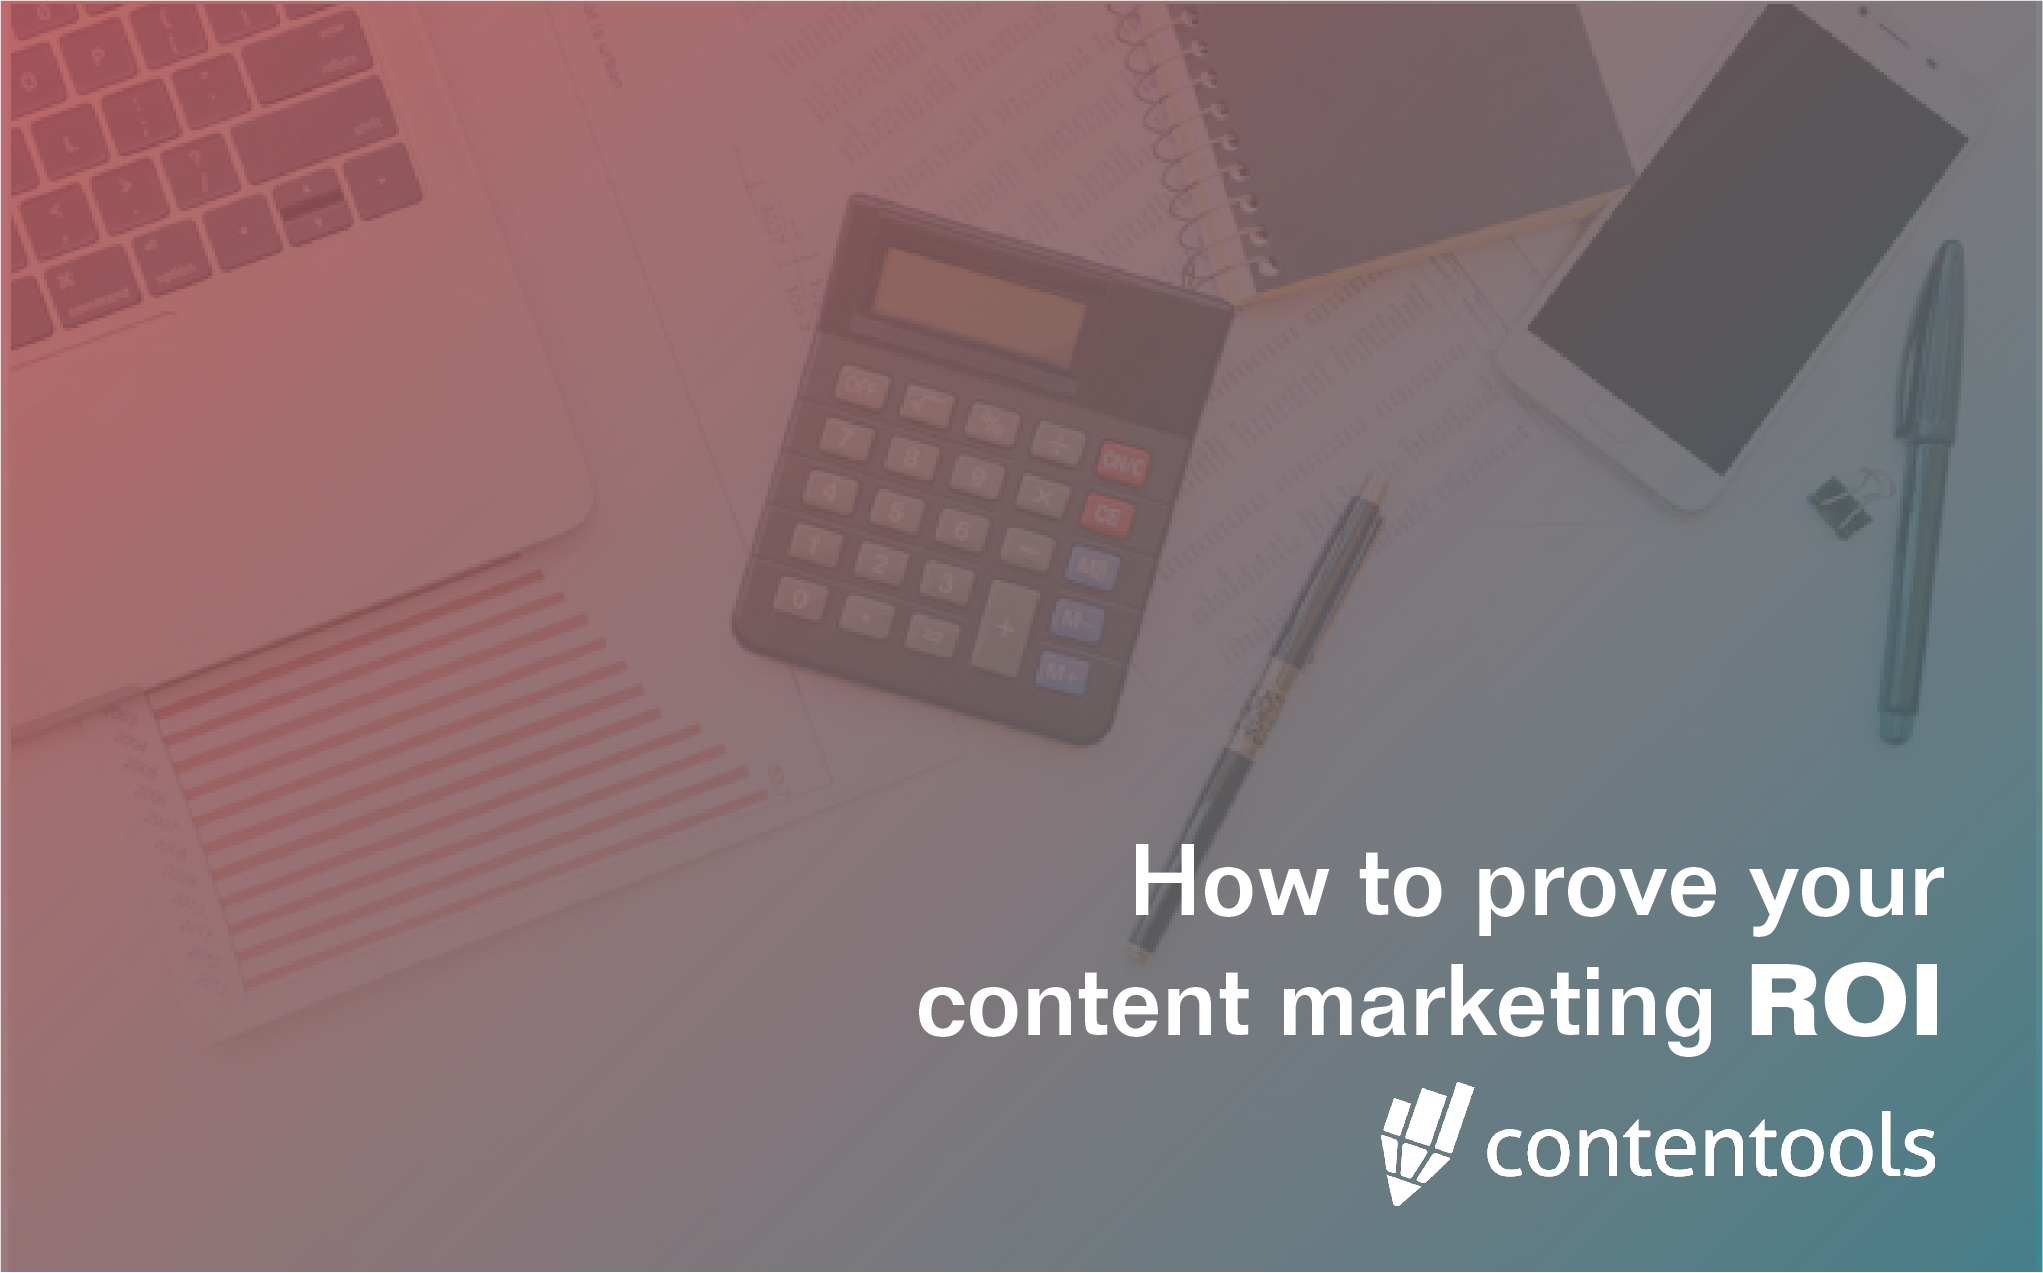 Prove content marketing roi